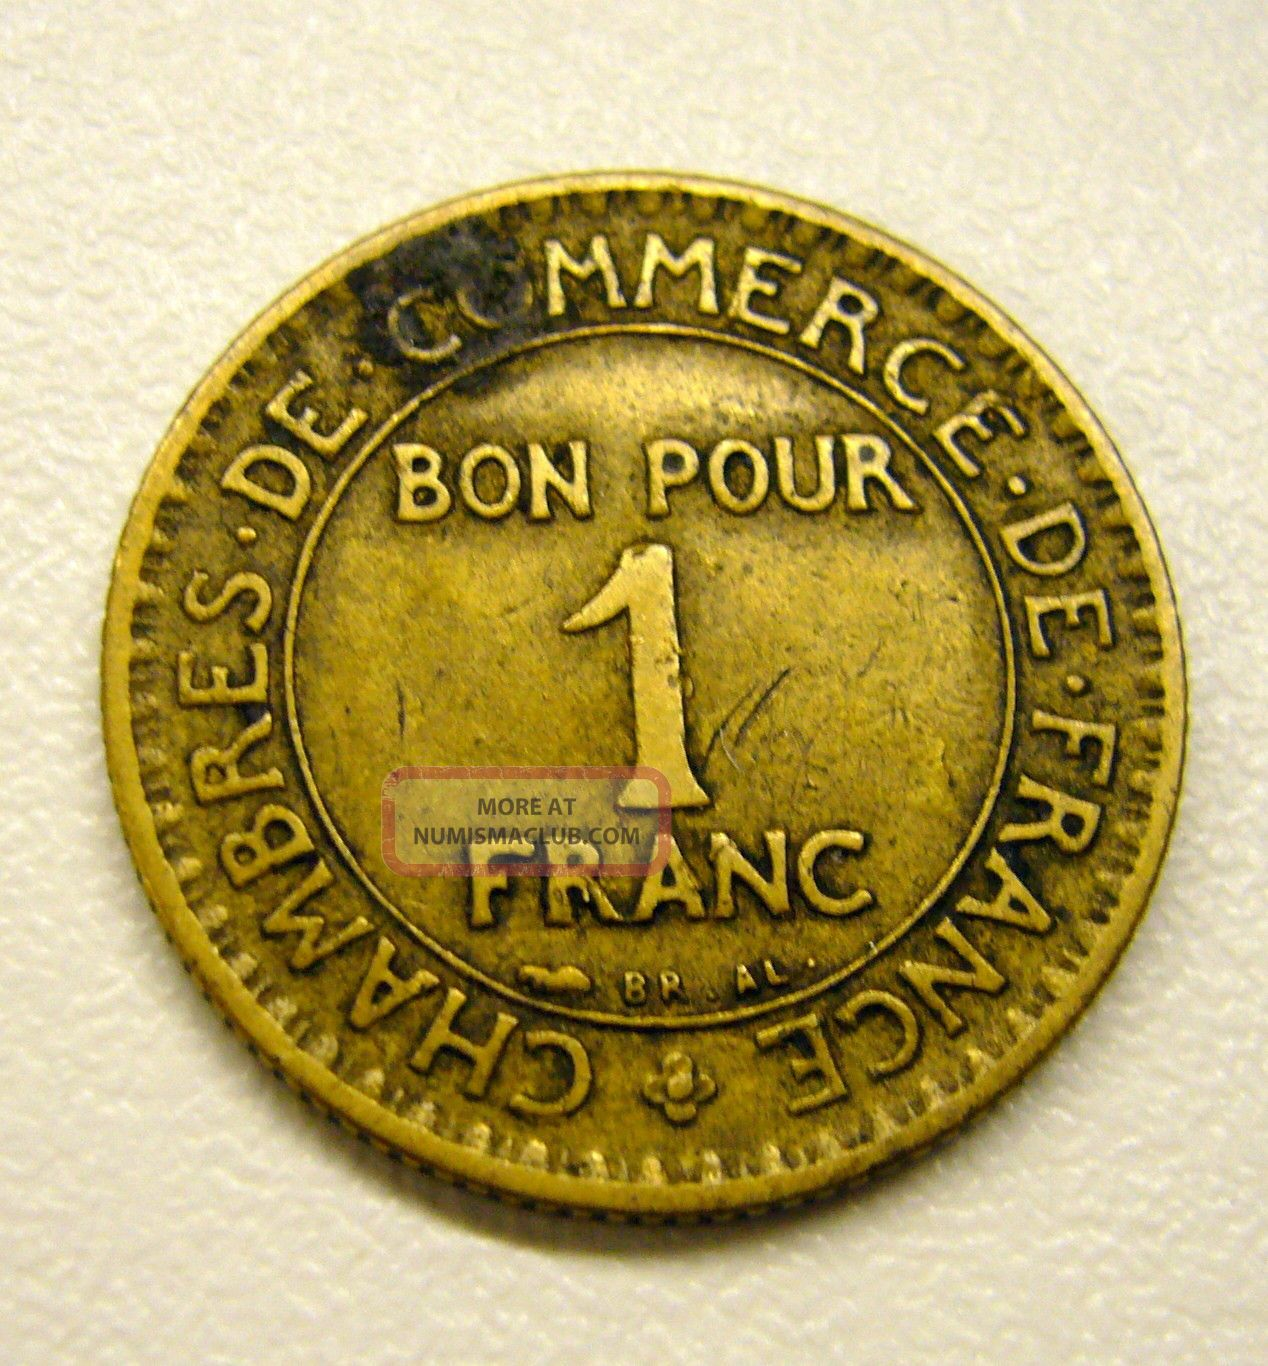 1923 1 franc coin commerce industrie bon pour france for Bon pour 2 francs 1925 chambre commerce